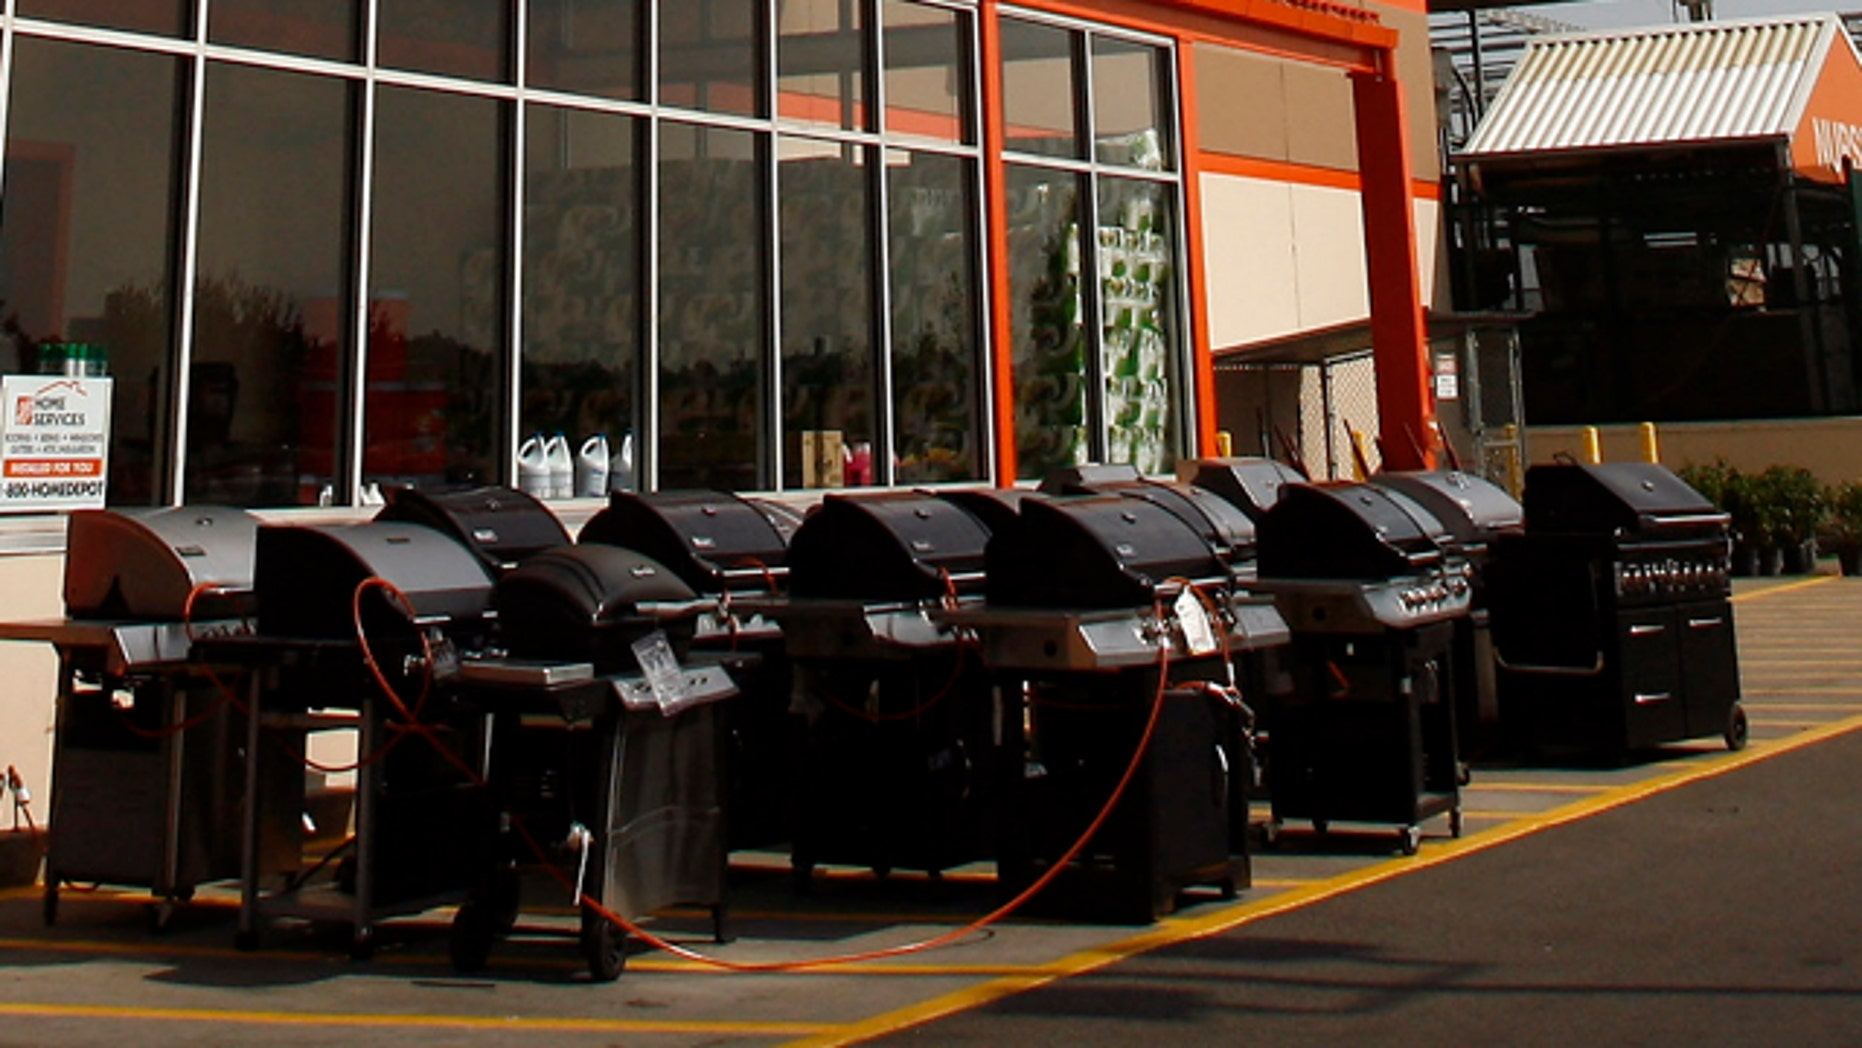 A Home Depot store is seen in New York, August 18, 2008. Analysts are expecting Home Depot to report a second-quarter profit of 61 cents a share on Tuesday, compared with 77 cents a year earlier, according to Reuters Estimates. The industry leader has said per-share earnings could fall as much as 24 percent this year.   REUTERS/Shannon Stapleton (UNITED STATES)